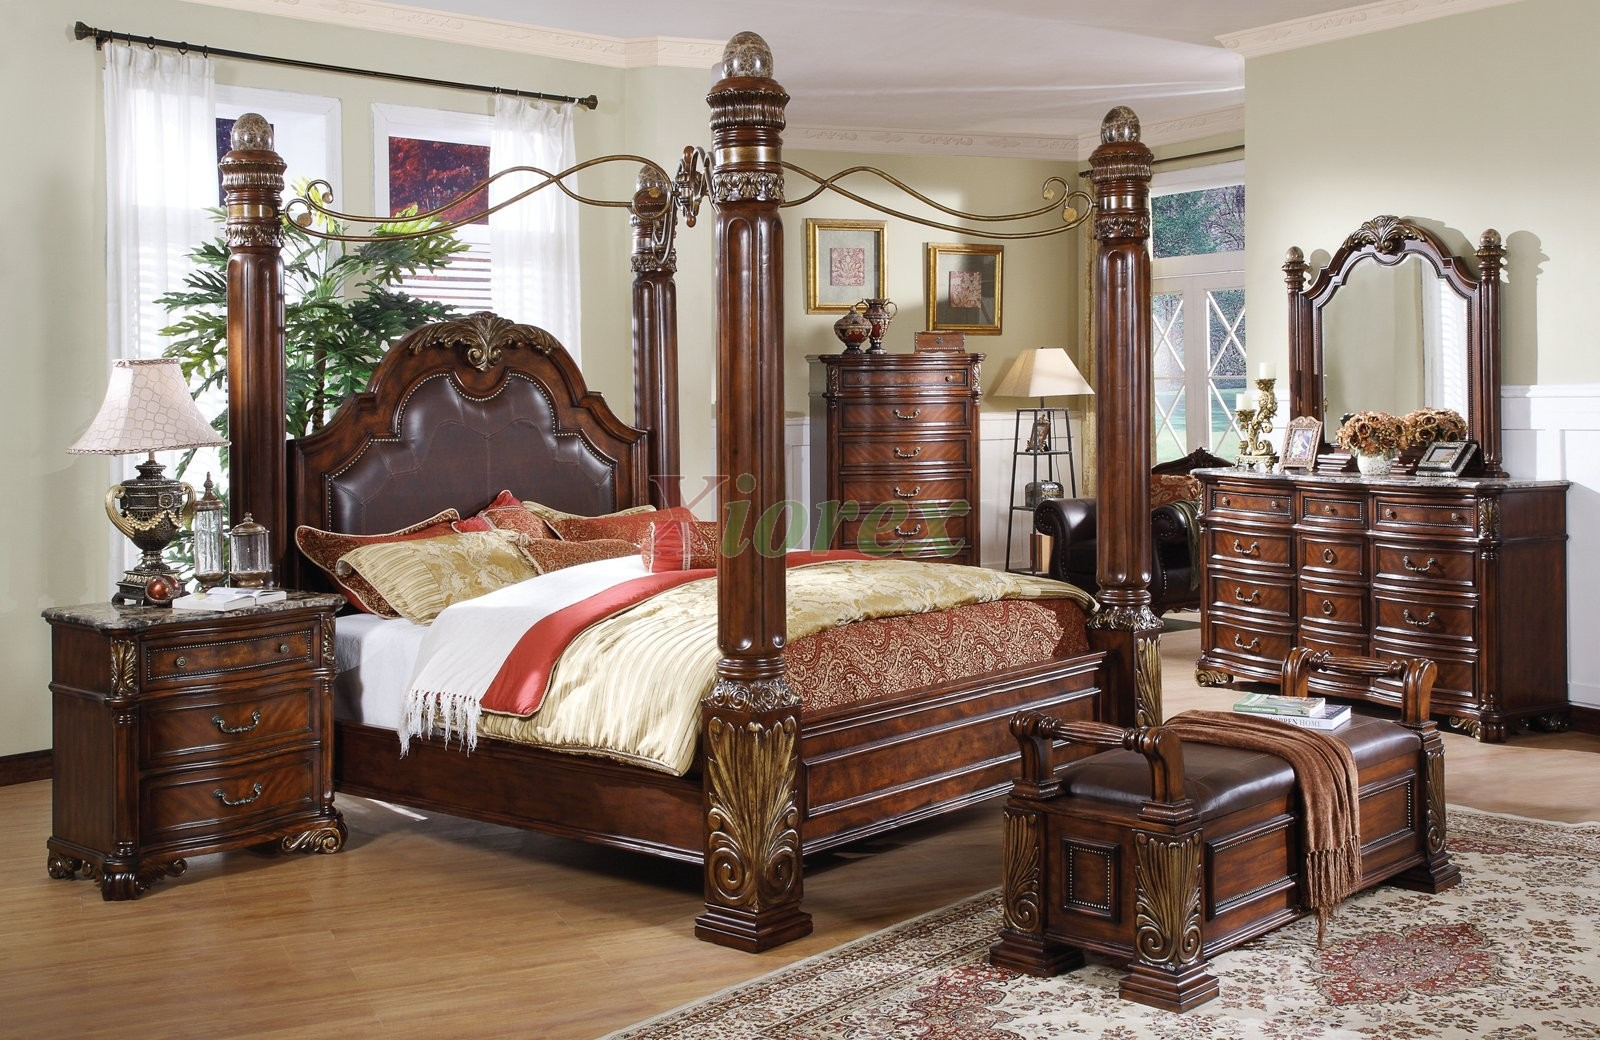 Canopy bed sets bedroom furniture sets w poster canopy for Bed and bedroom furniture sets